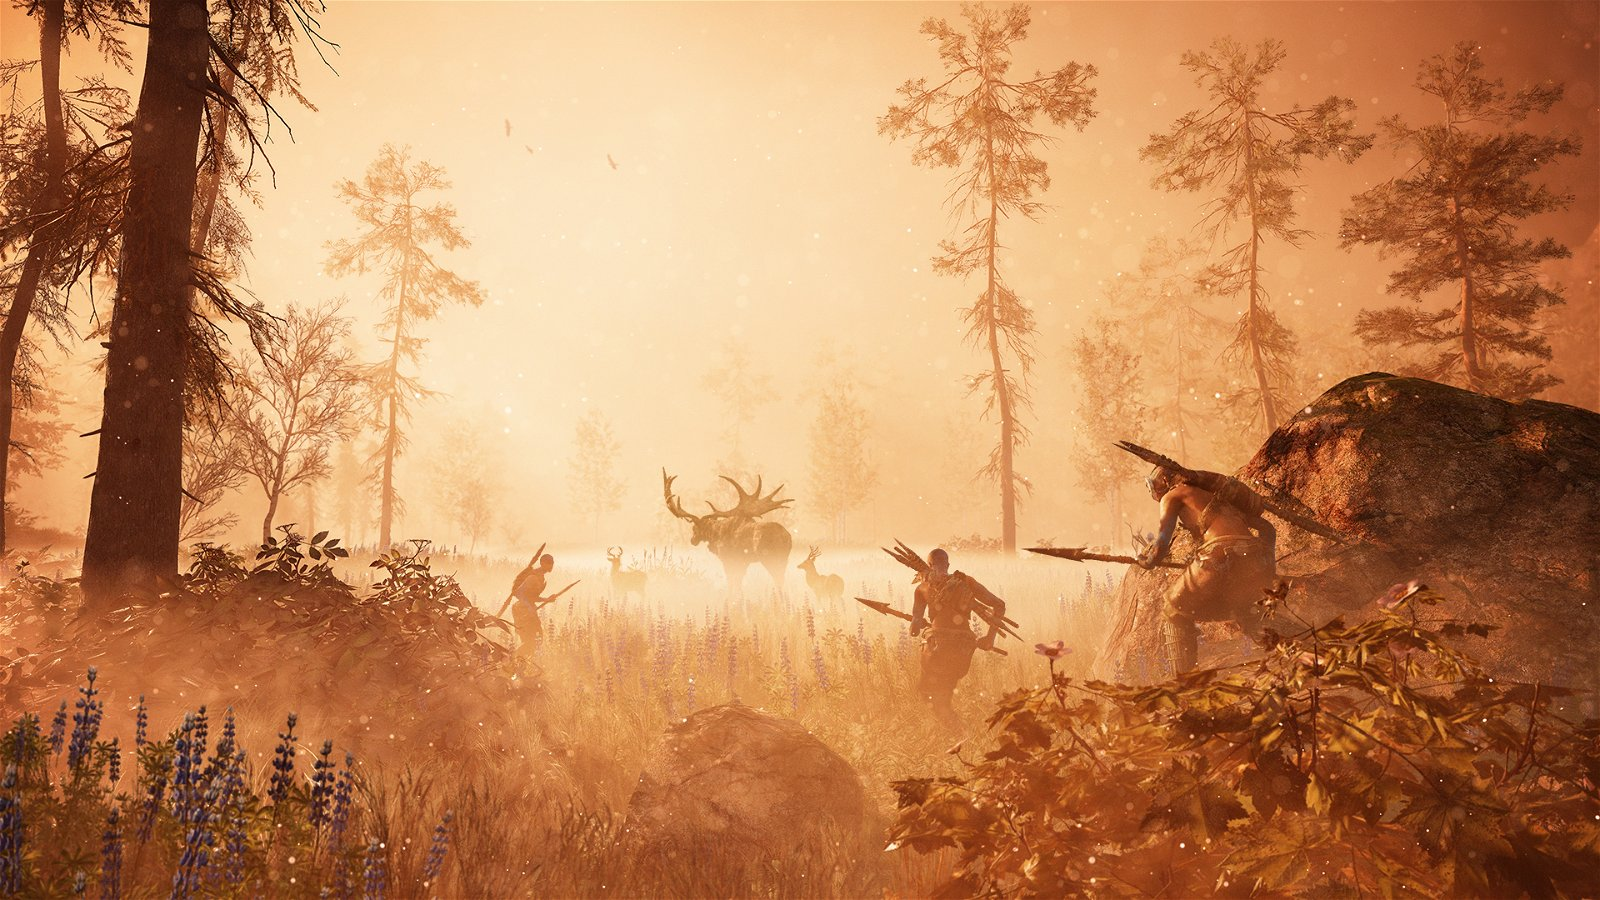 Hunting_Elk_GOLD_1080p_1449171013